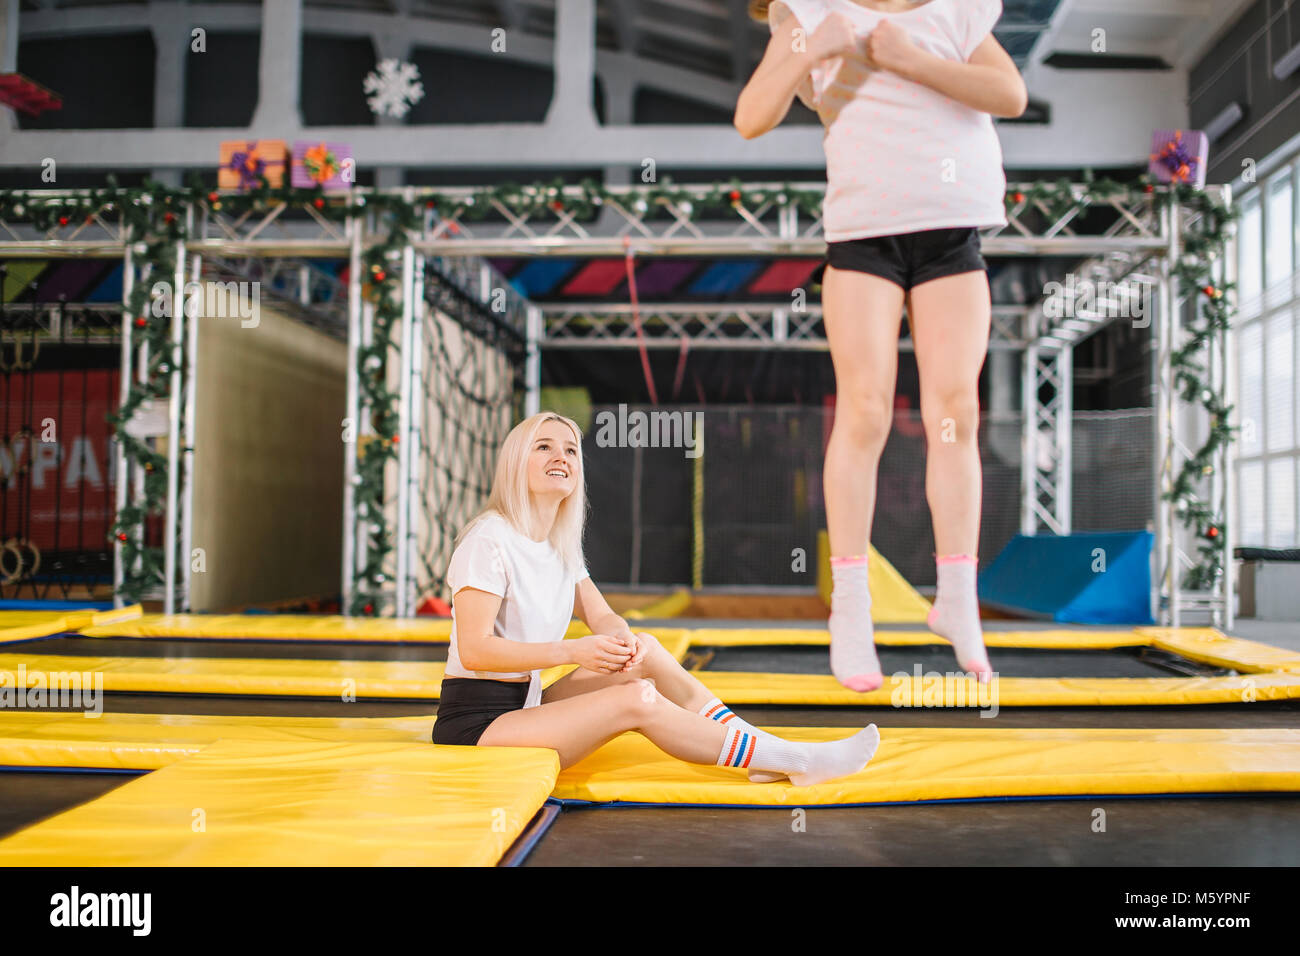 daughter Bouncing On Trampoline while Mother watch for safety - Stock Image